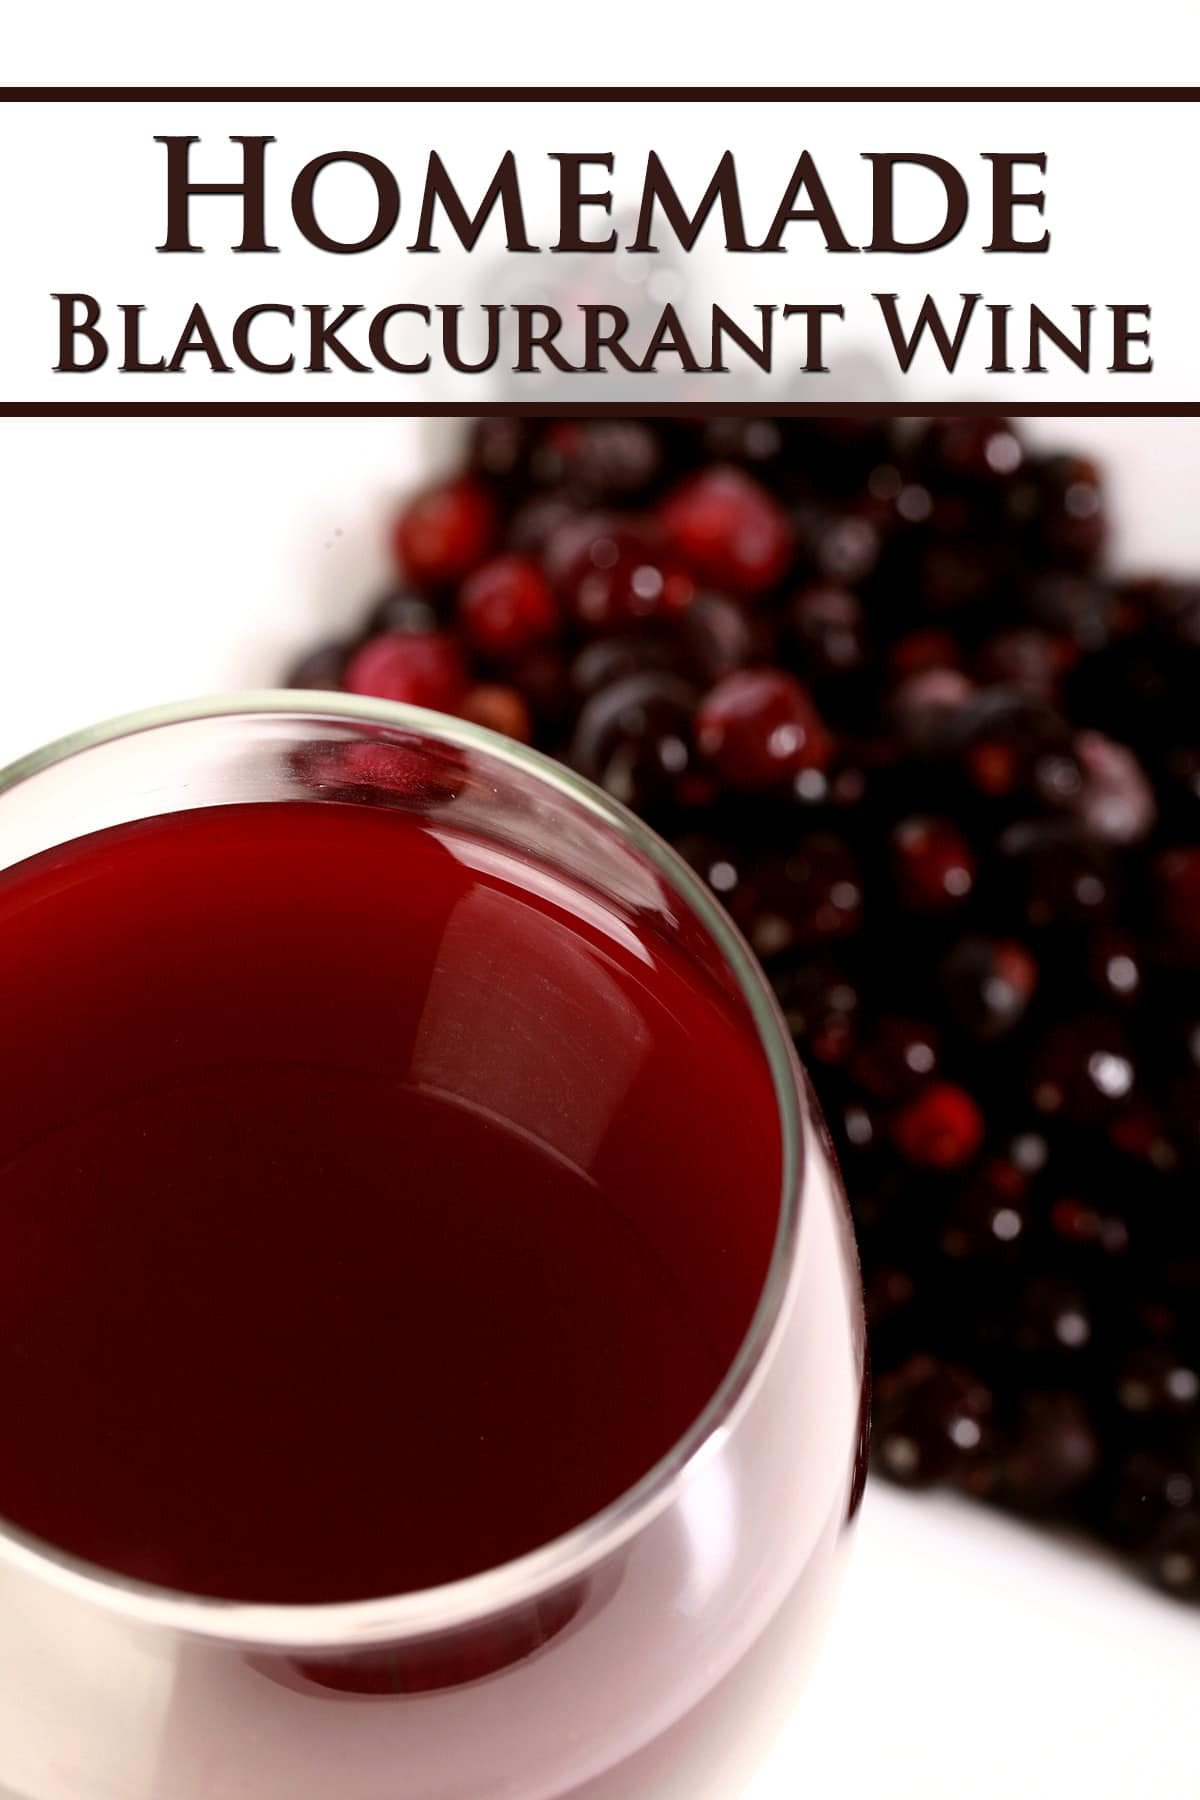 A glass of blackcurrant wine, with a small dish of black currants next to it.